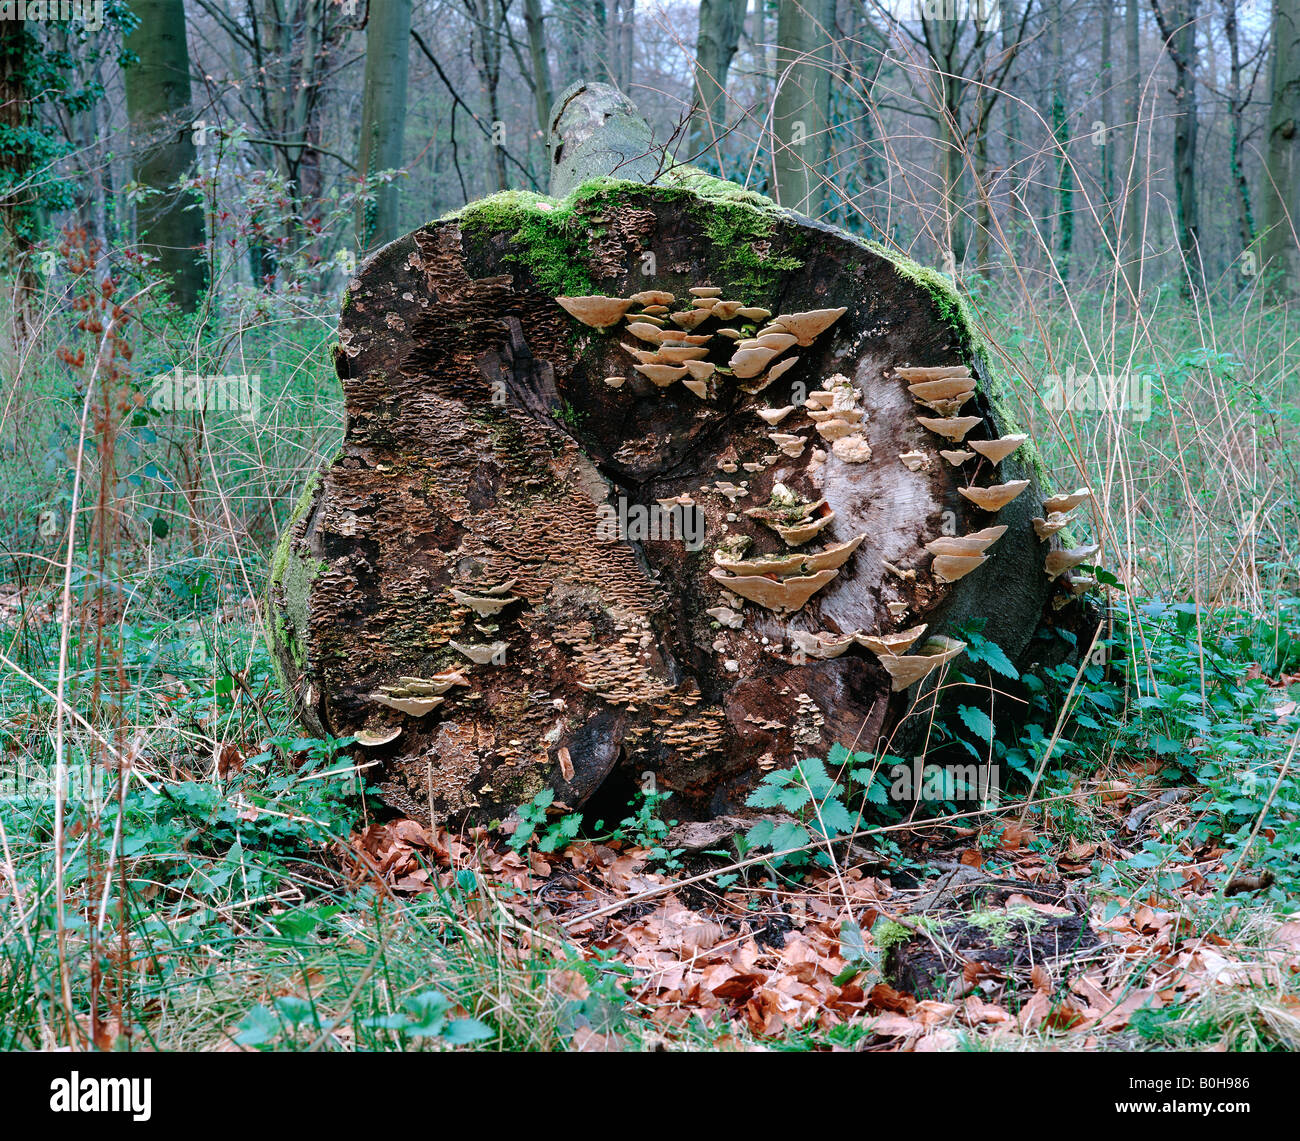 Dead tree trunk covered with Bracket fungi (Fghi) and moss - Stock Image